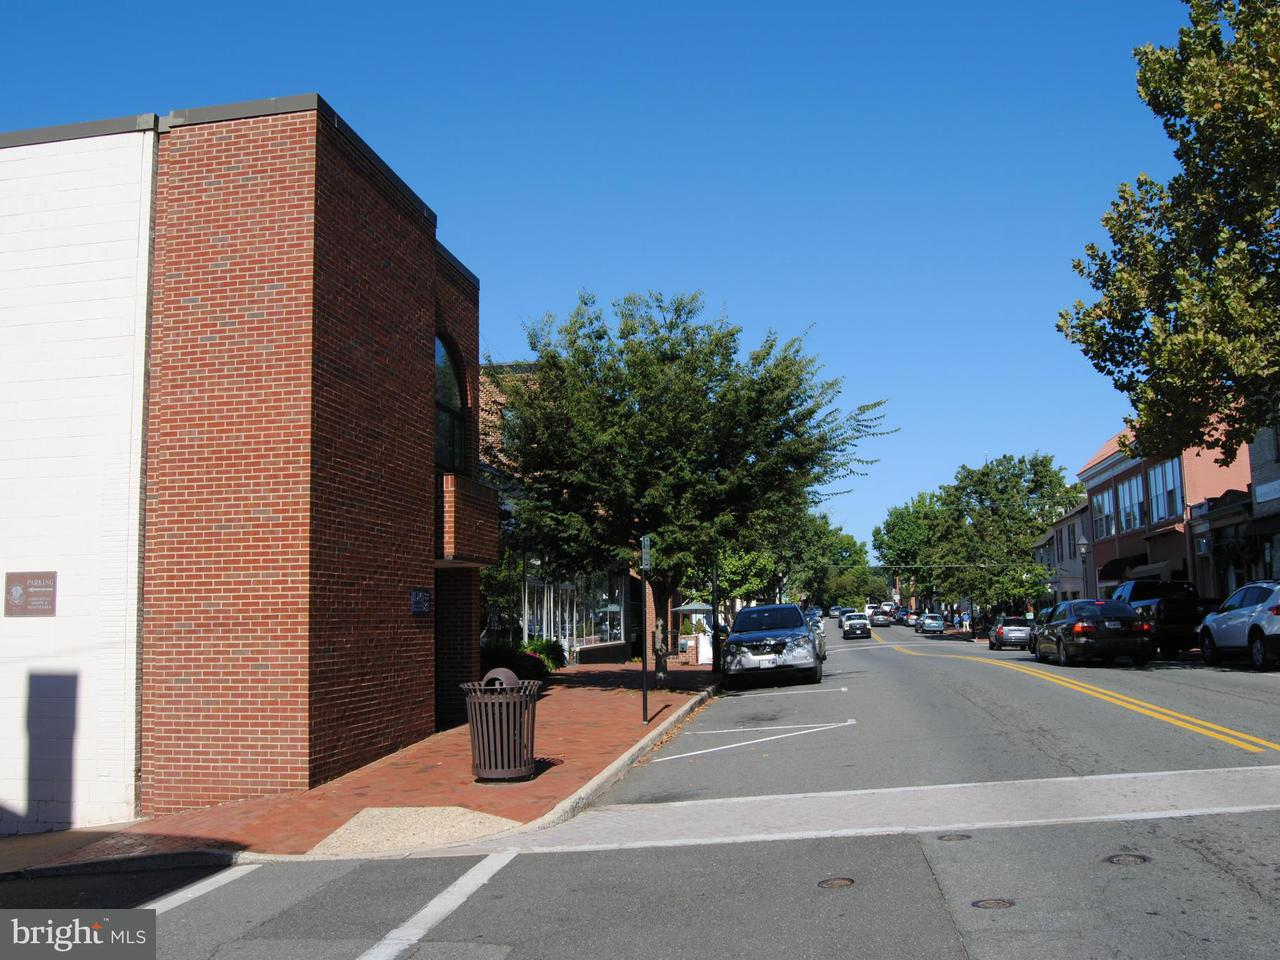 Additional photo for property listing at 82 MAIN Street 82 MAIN Street Warrenton, Virginia 20186 Estados Unidos